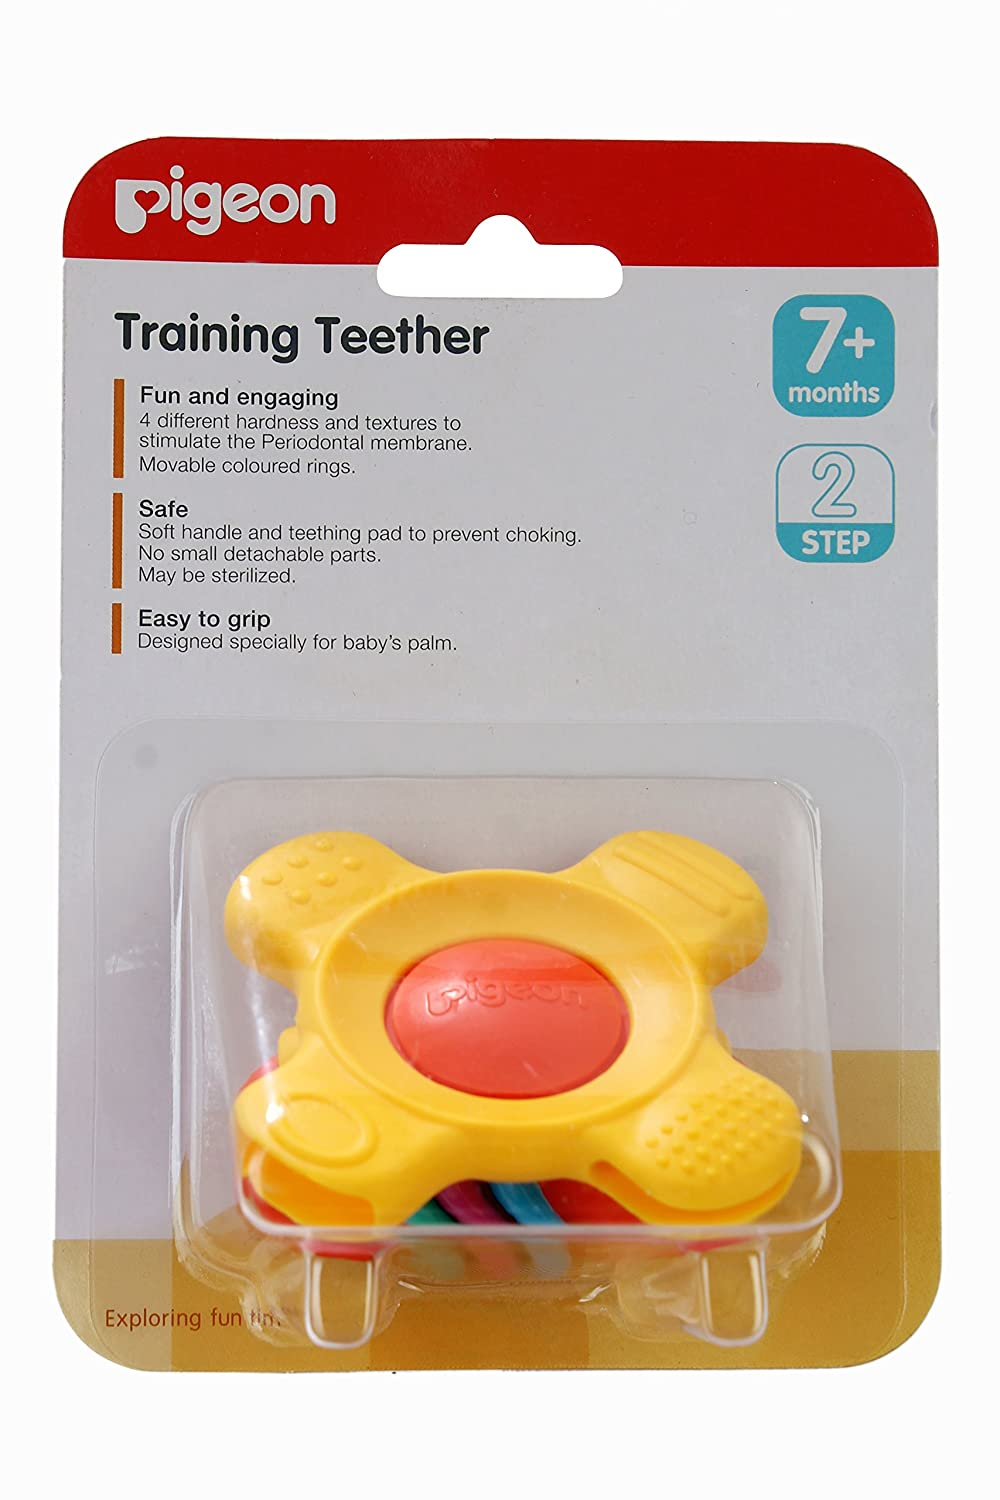 Teether Mother And Baby Products bpa Free Smart Baby Teether Mini Simulation Speaker Shape Baby Dental Care Toys Safe Silicone